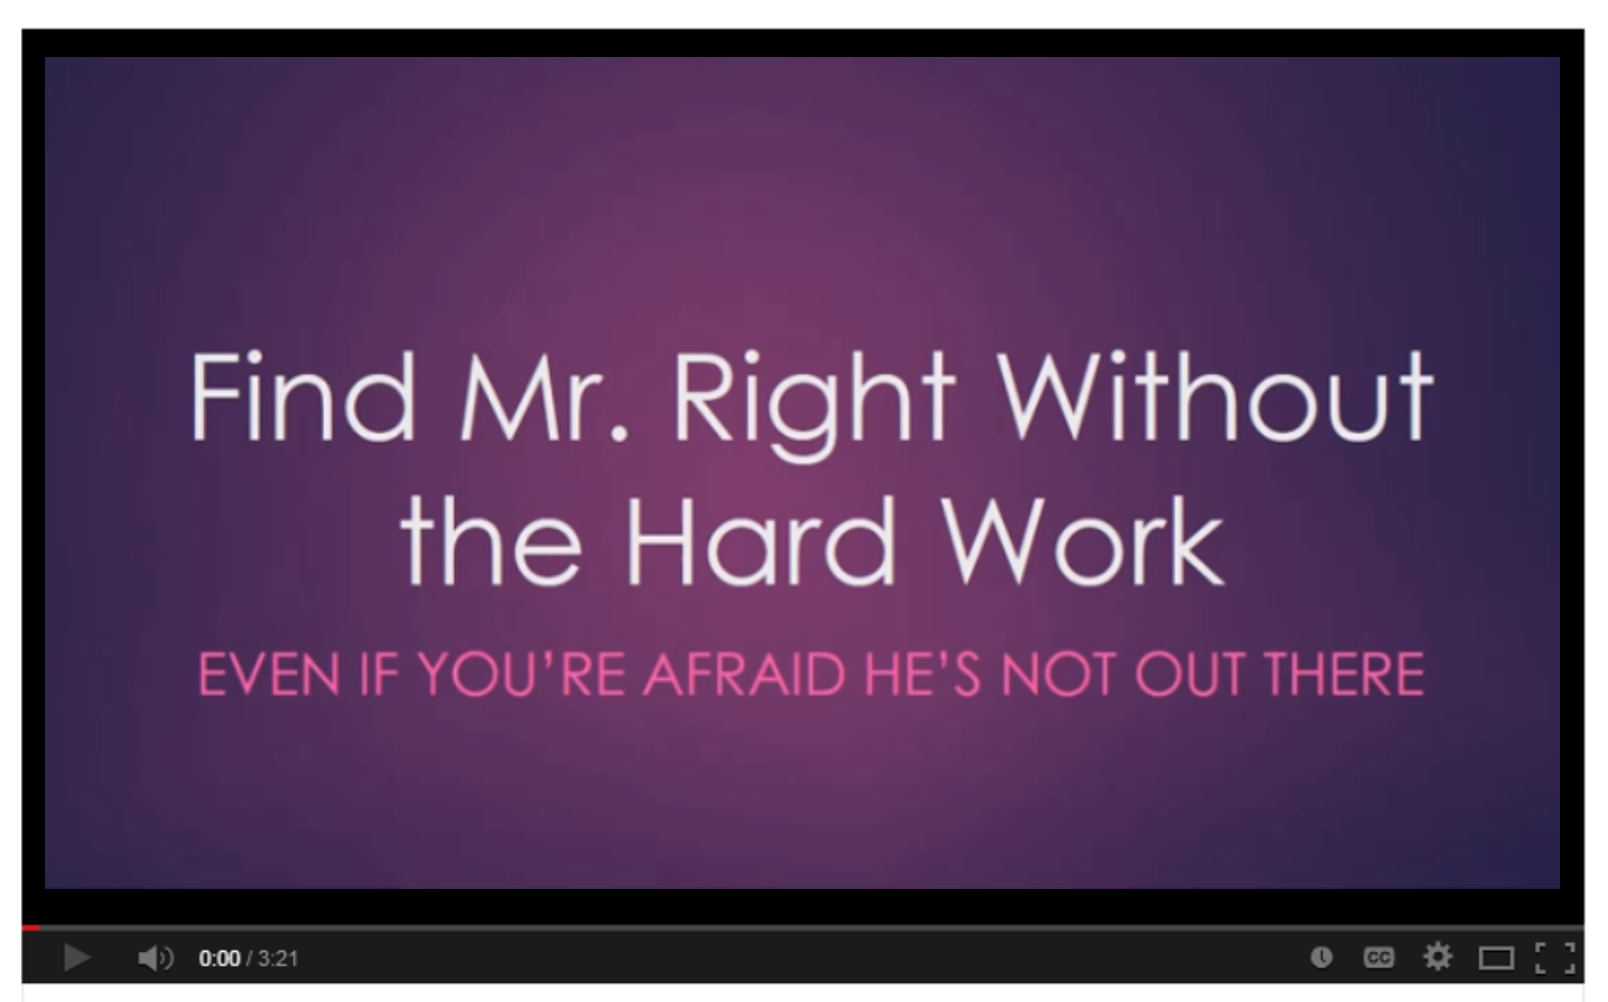 mr right image.png